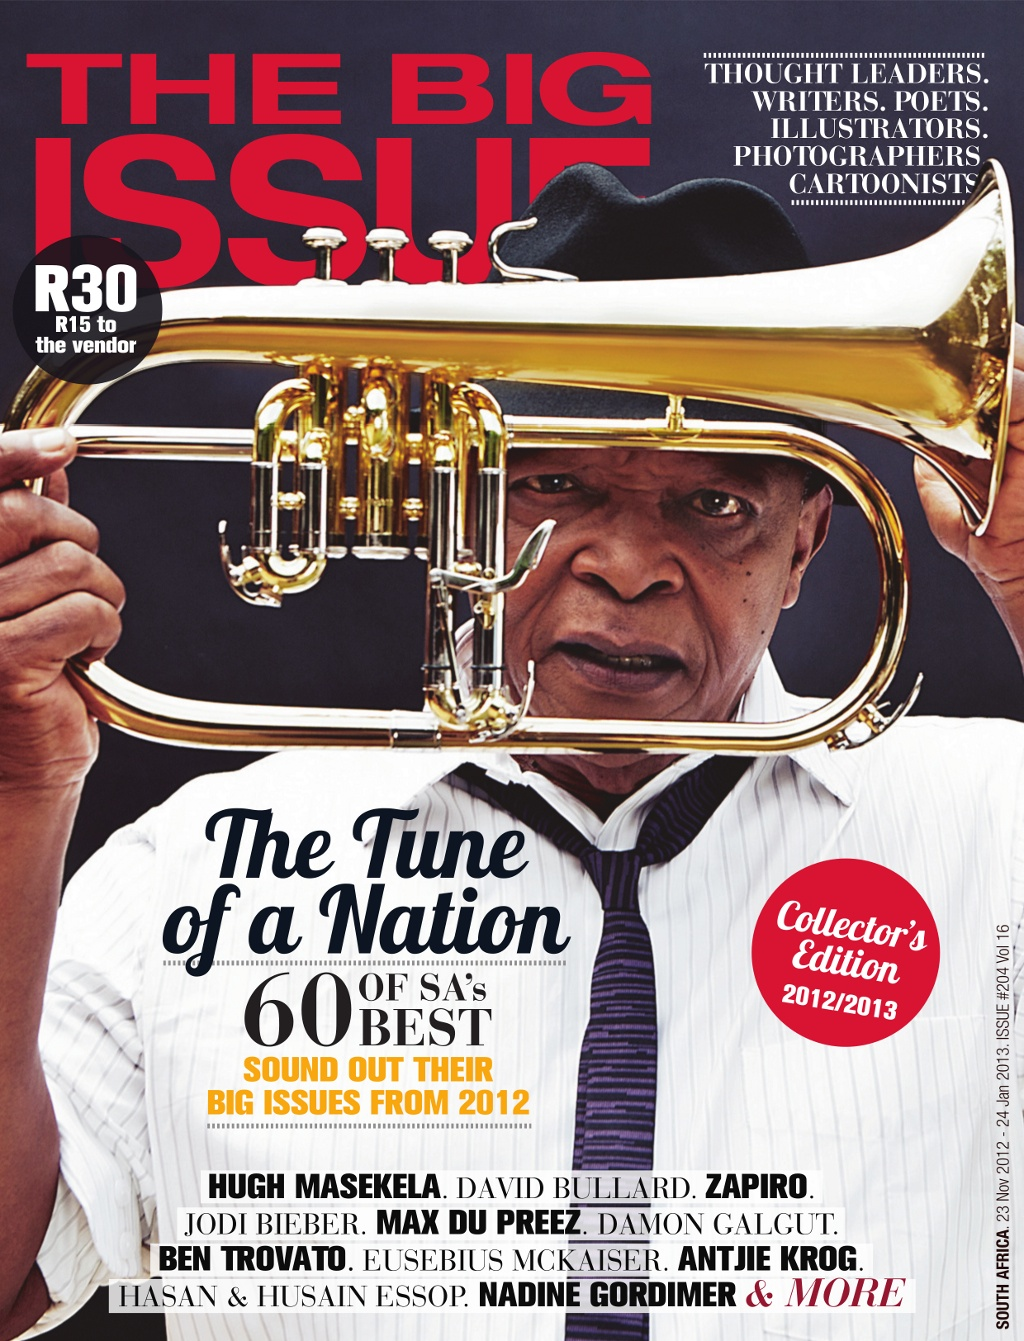 Photograph by Brett Rubin; Cover Art courtesy of The Big Issue